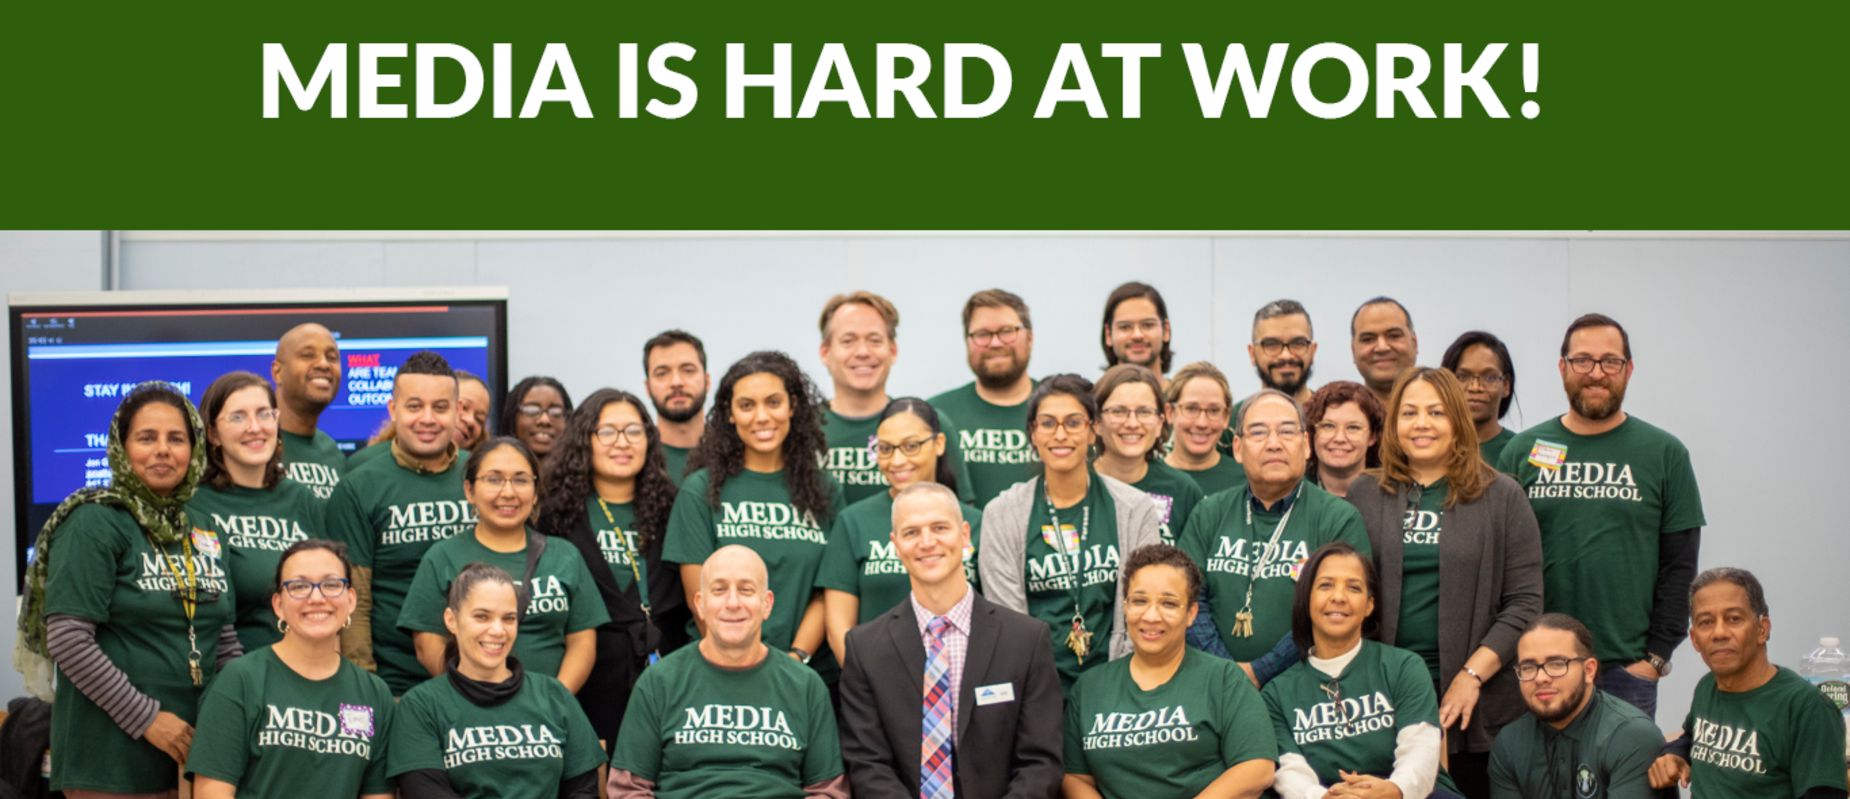 Media High School is a Professional Learning Community!